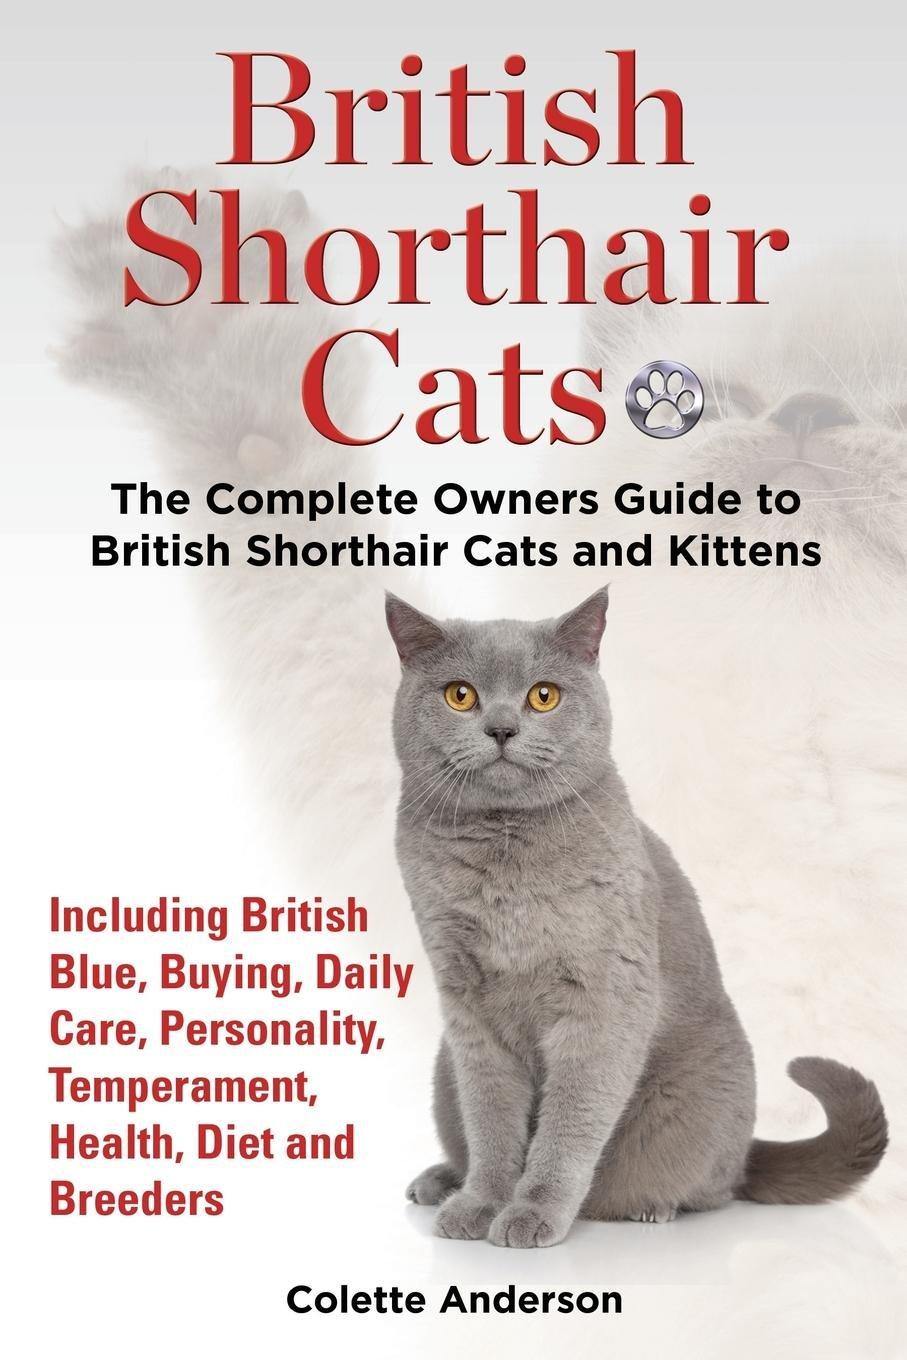 Download British Shorthair Cats, The Complete Owners Guide to British Shorthair Cats and Kittens  Including British Blue, Buying, Daily Care, Personality, Temperament, Health, Diet and Breeders PDF ePub book